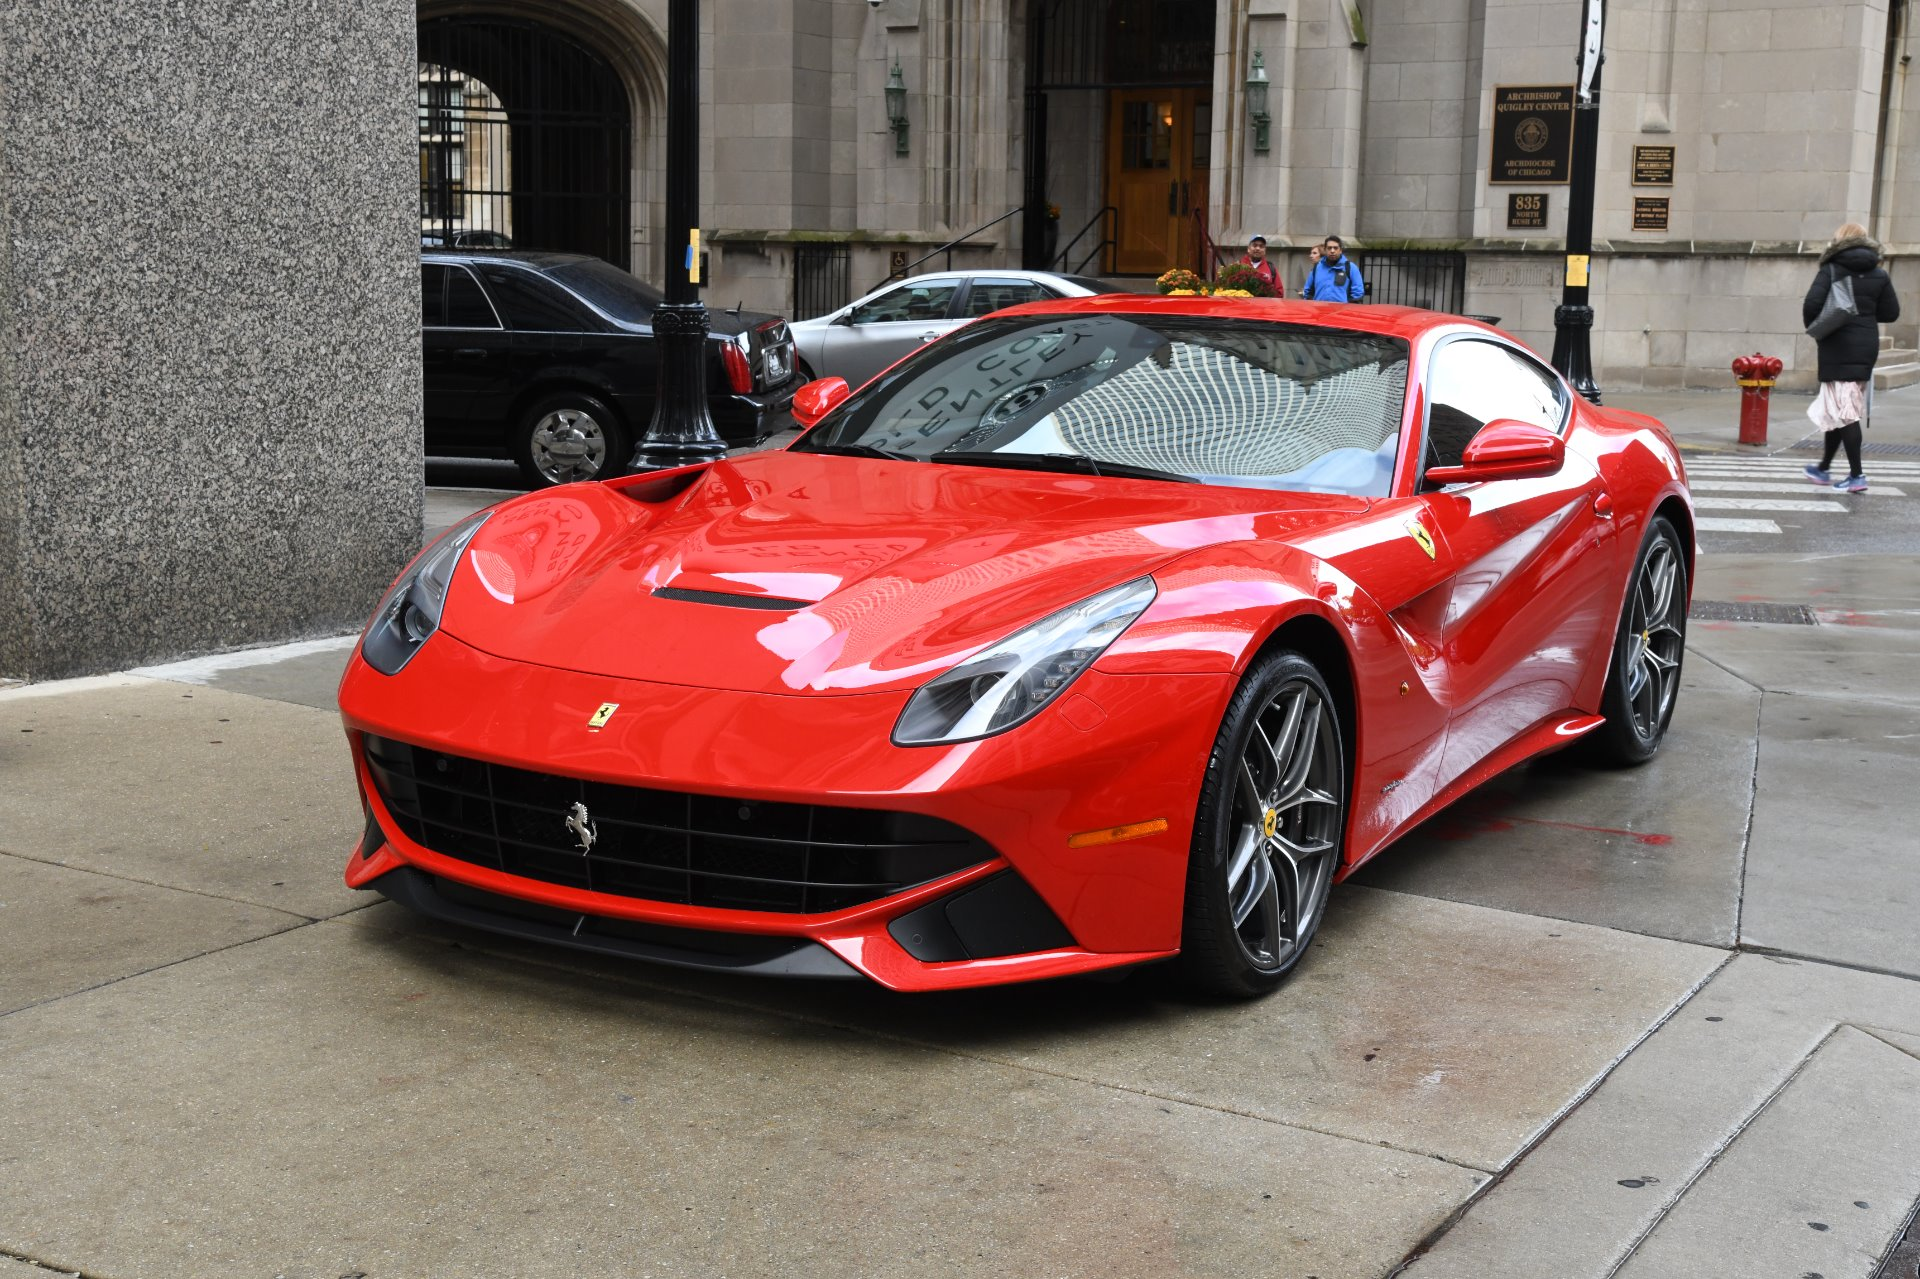 The History and Evolution of the Ferrari F12 Berlinetta